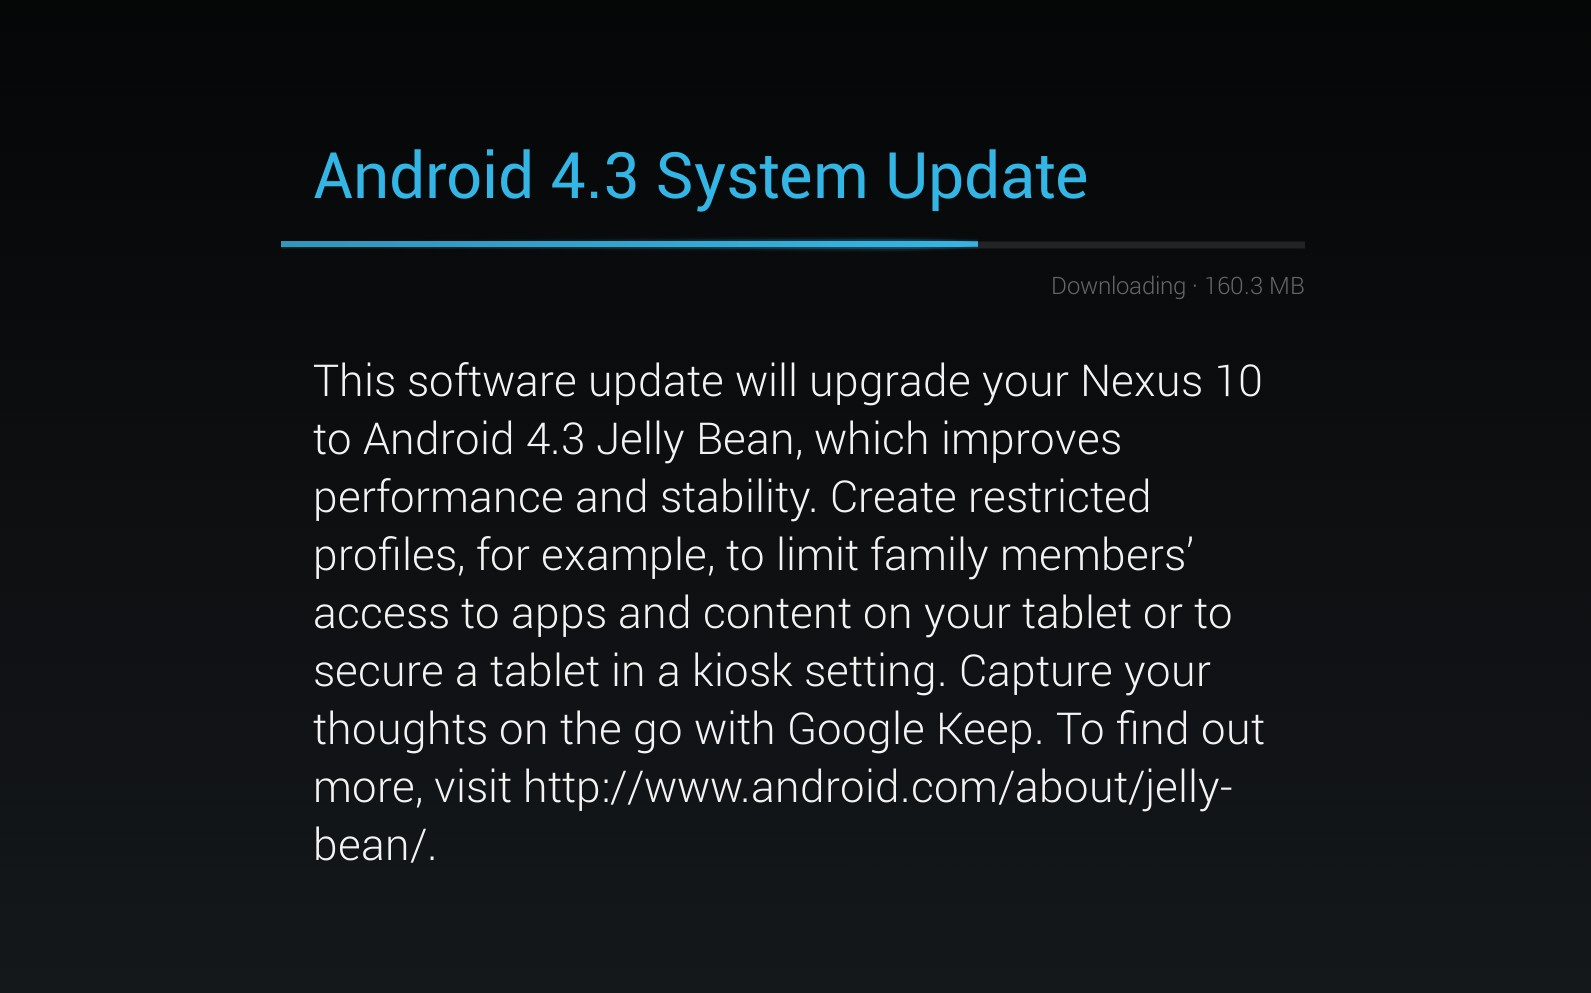 Goondu DIY: Manually get your Nexus device to update to Android 4.3